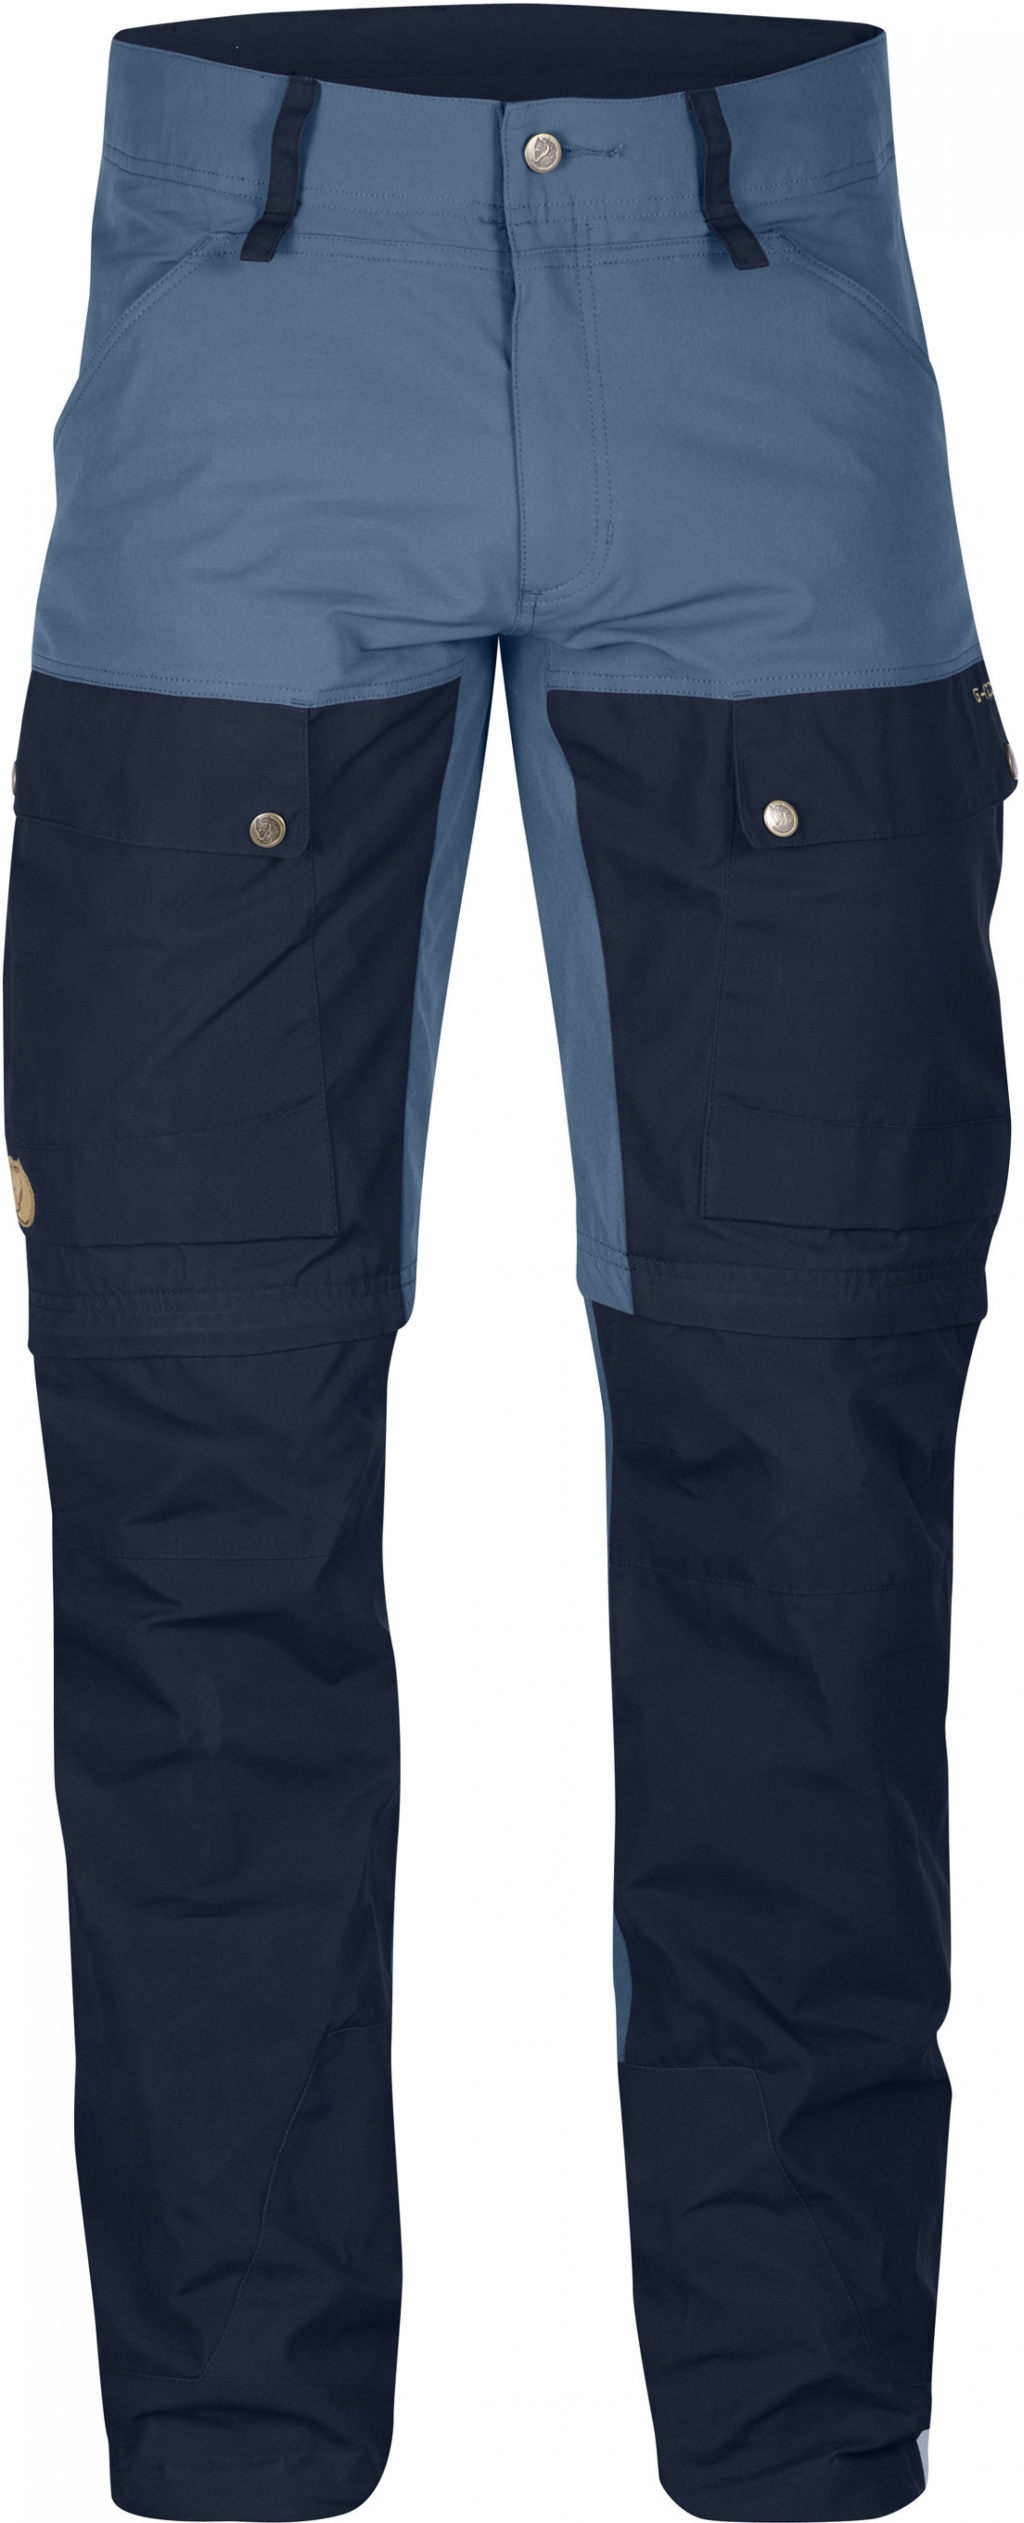 FjallRaven Keb Gaiter Trousers Long Dark Navy-30